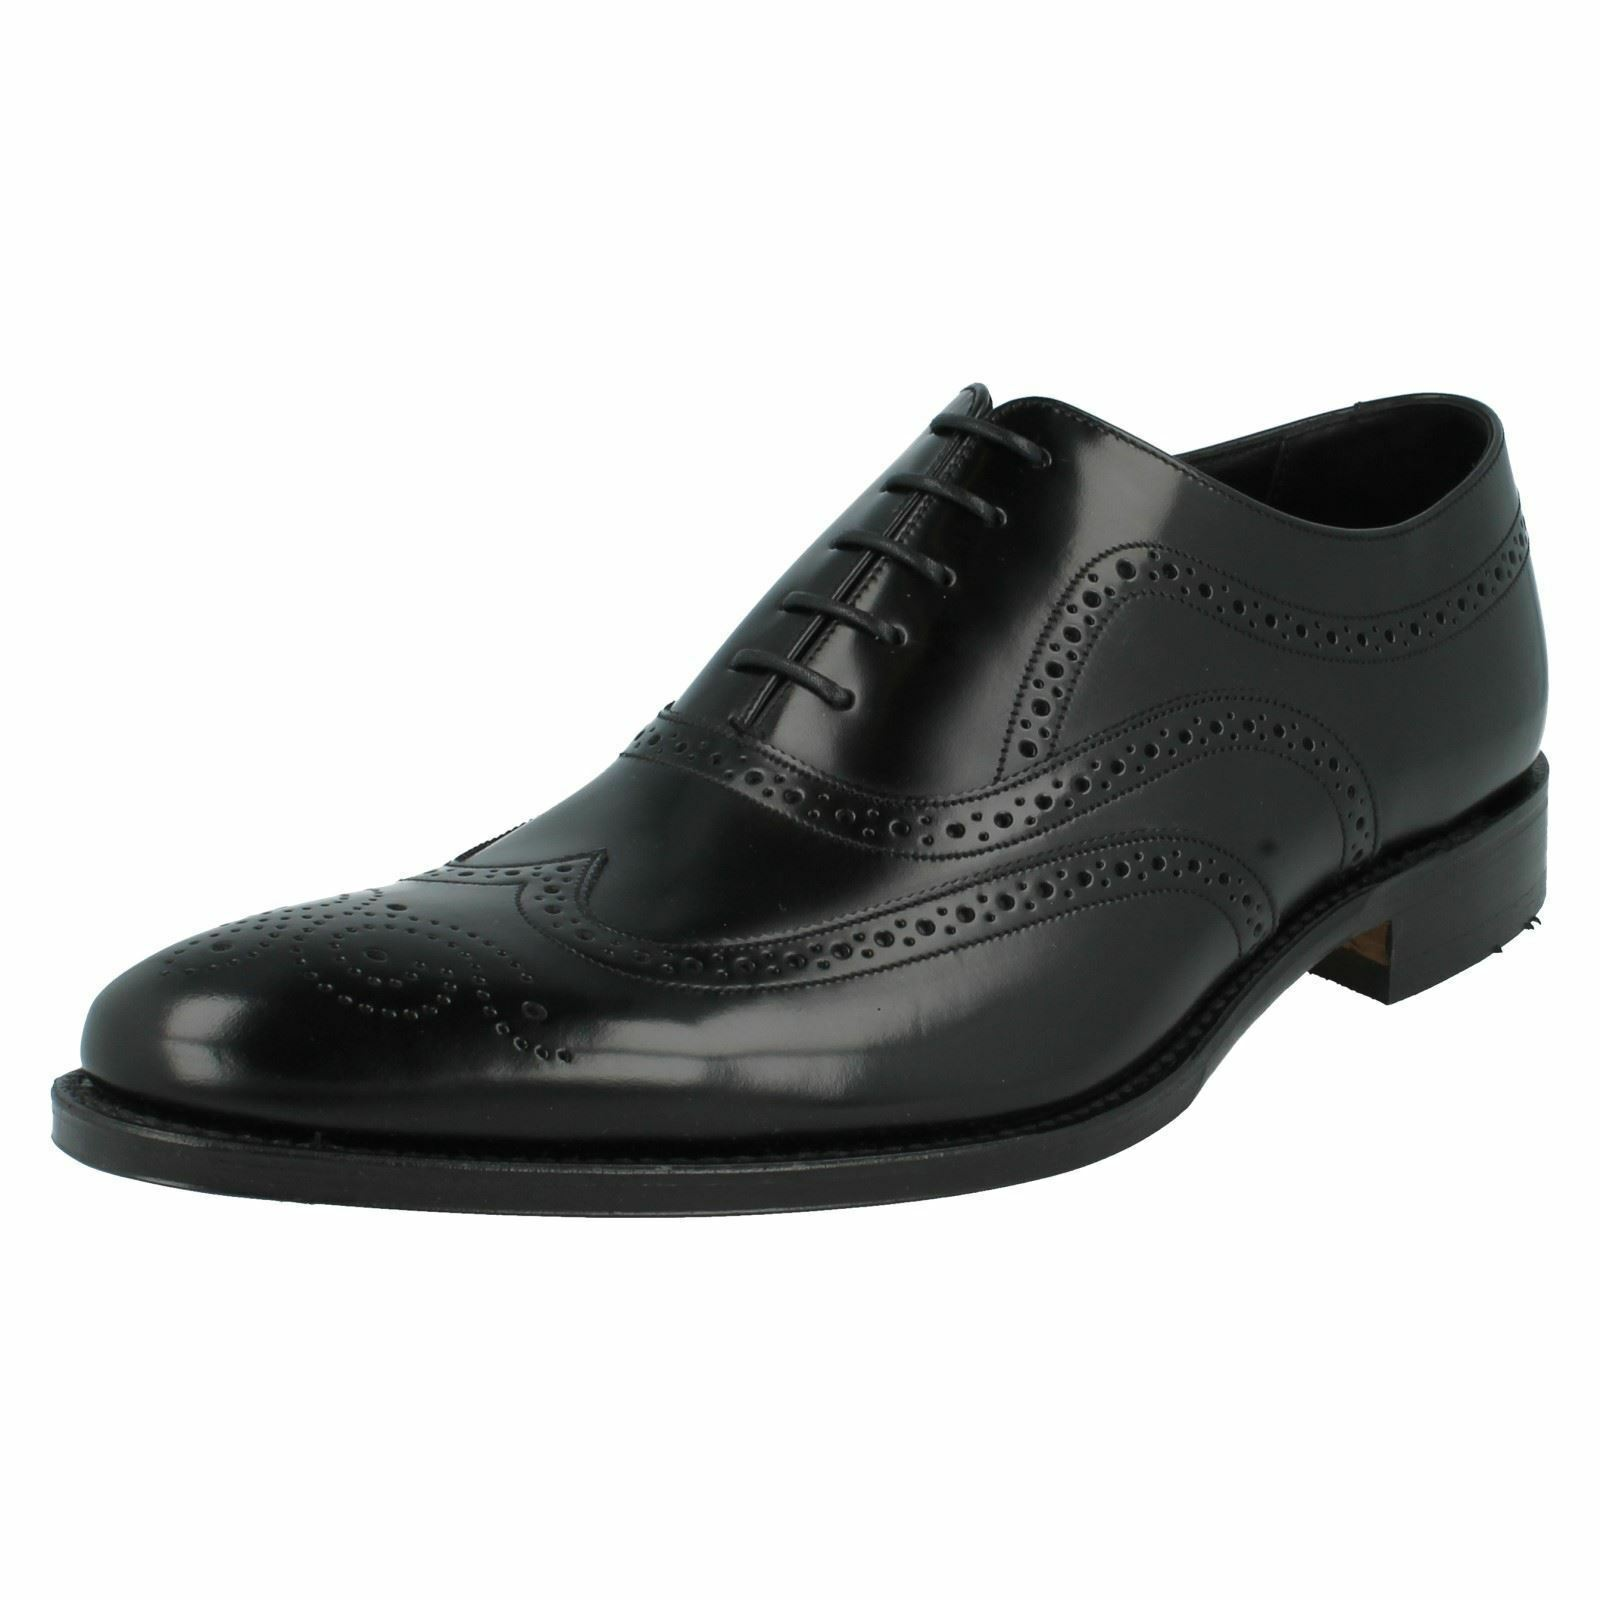 643fdc2503ec85 Loake Up Brogue shoes - Jones Men s Lace nnjxhm6471-Formal Shoes ...